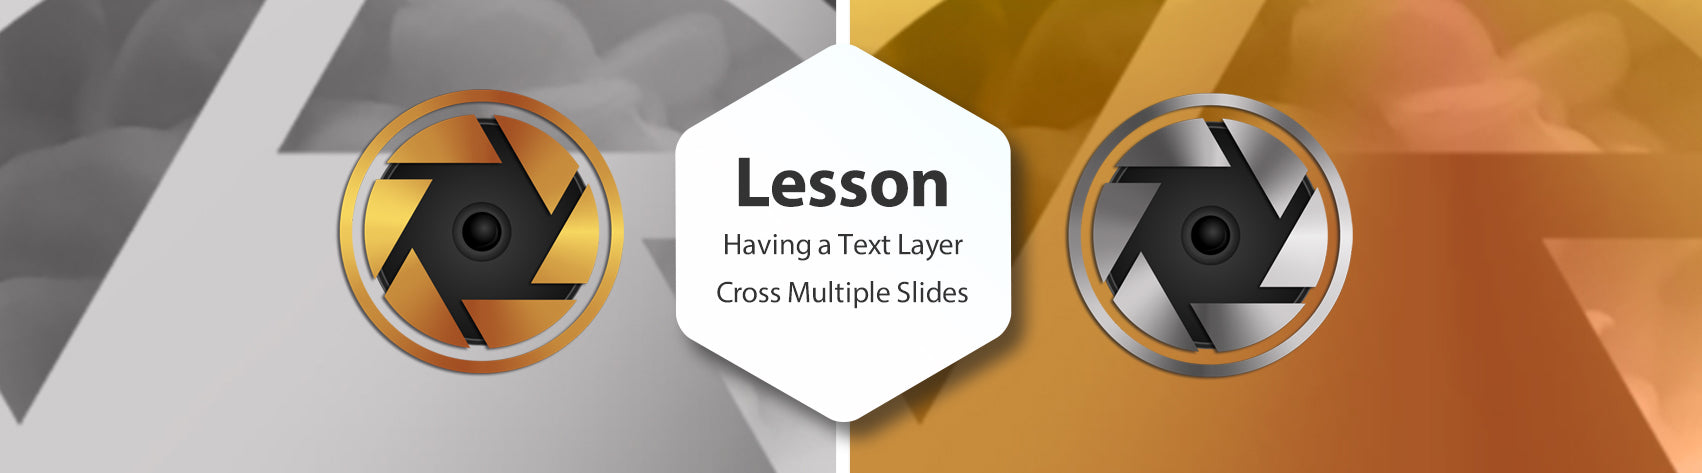 Lesson -  Having a Text Layer Cross Multiple Slides